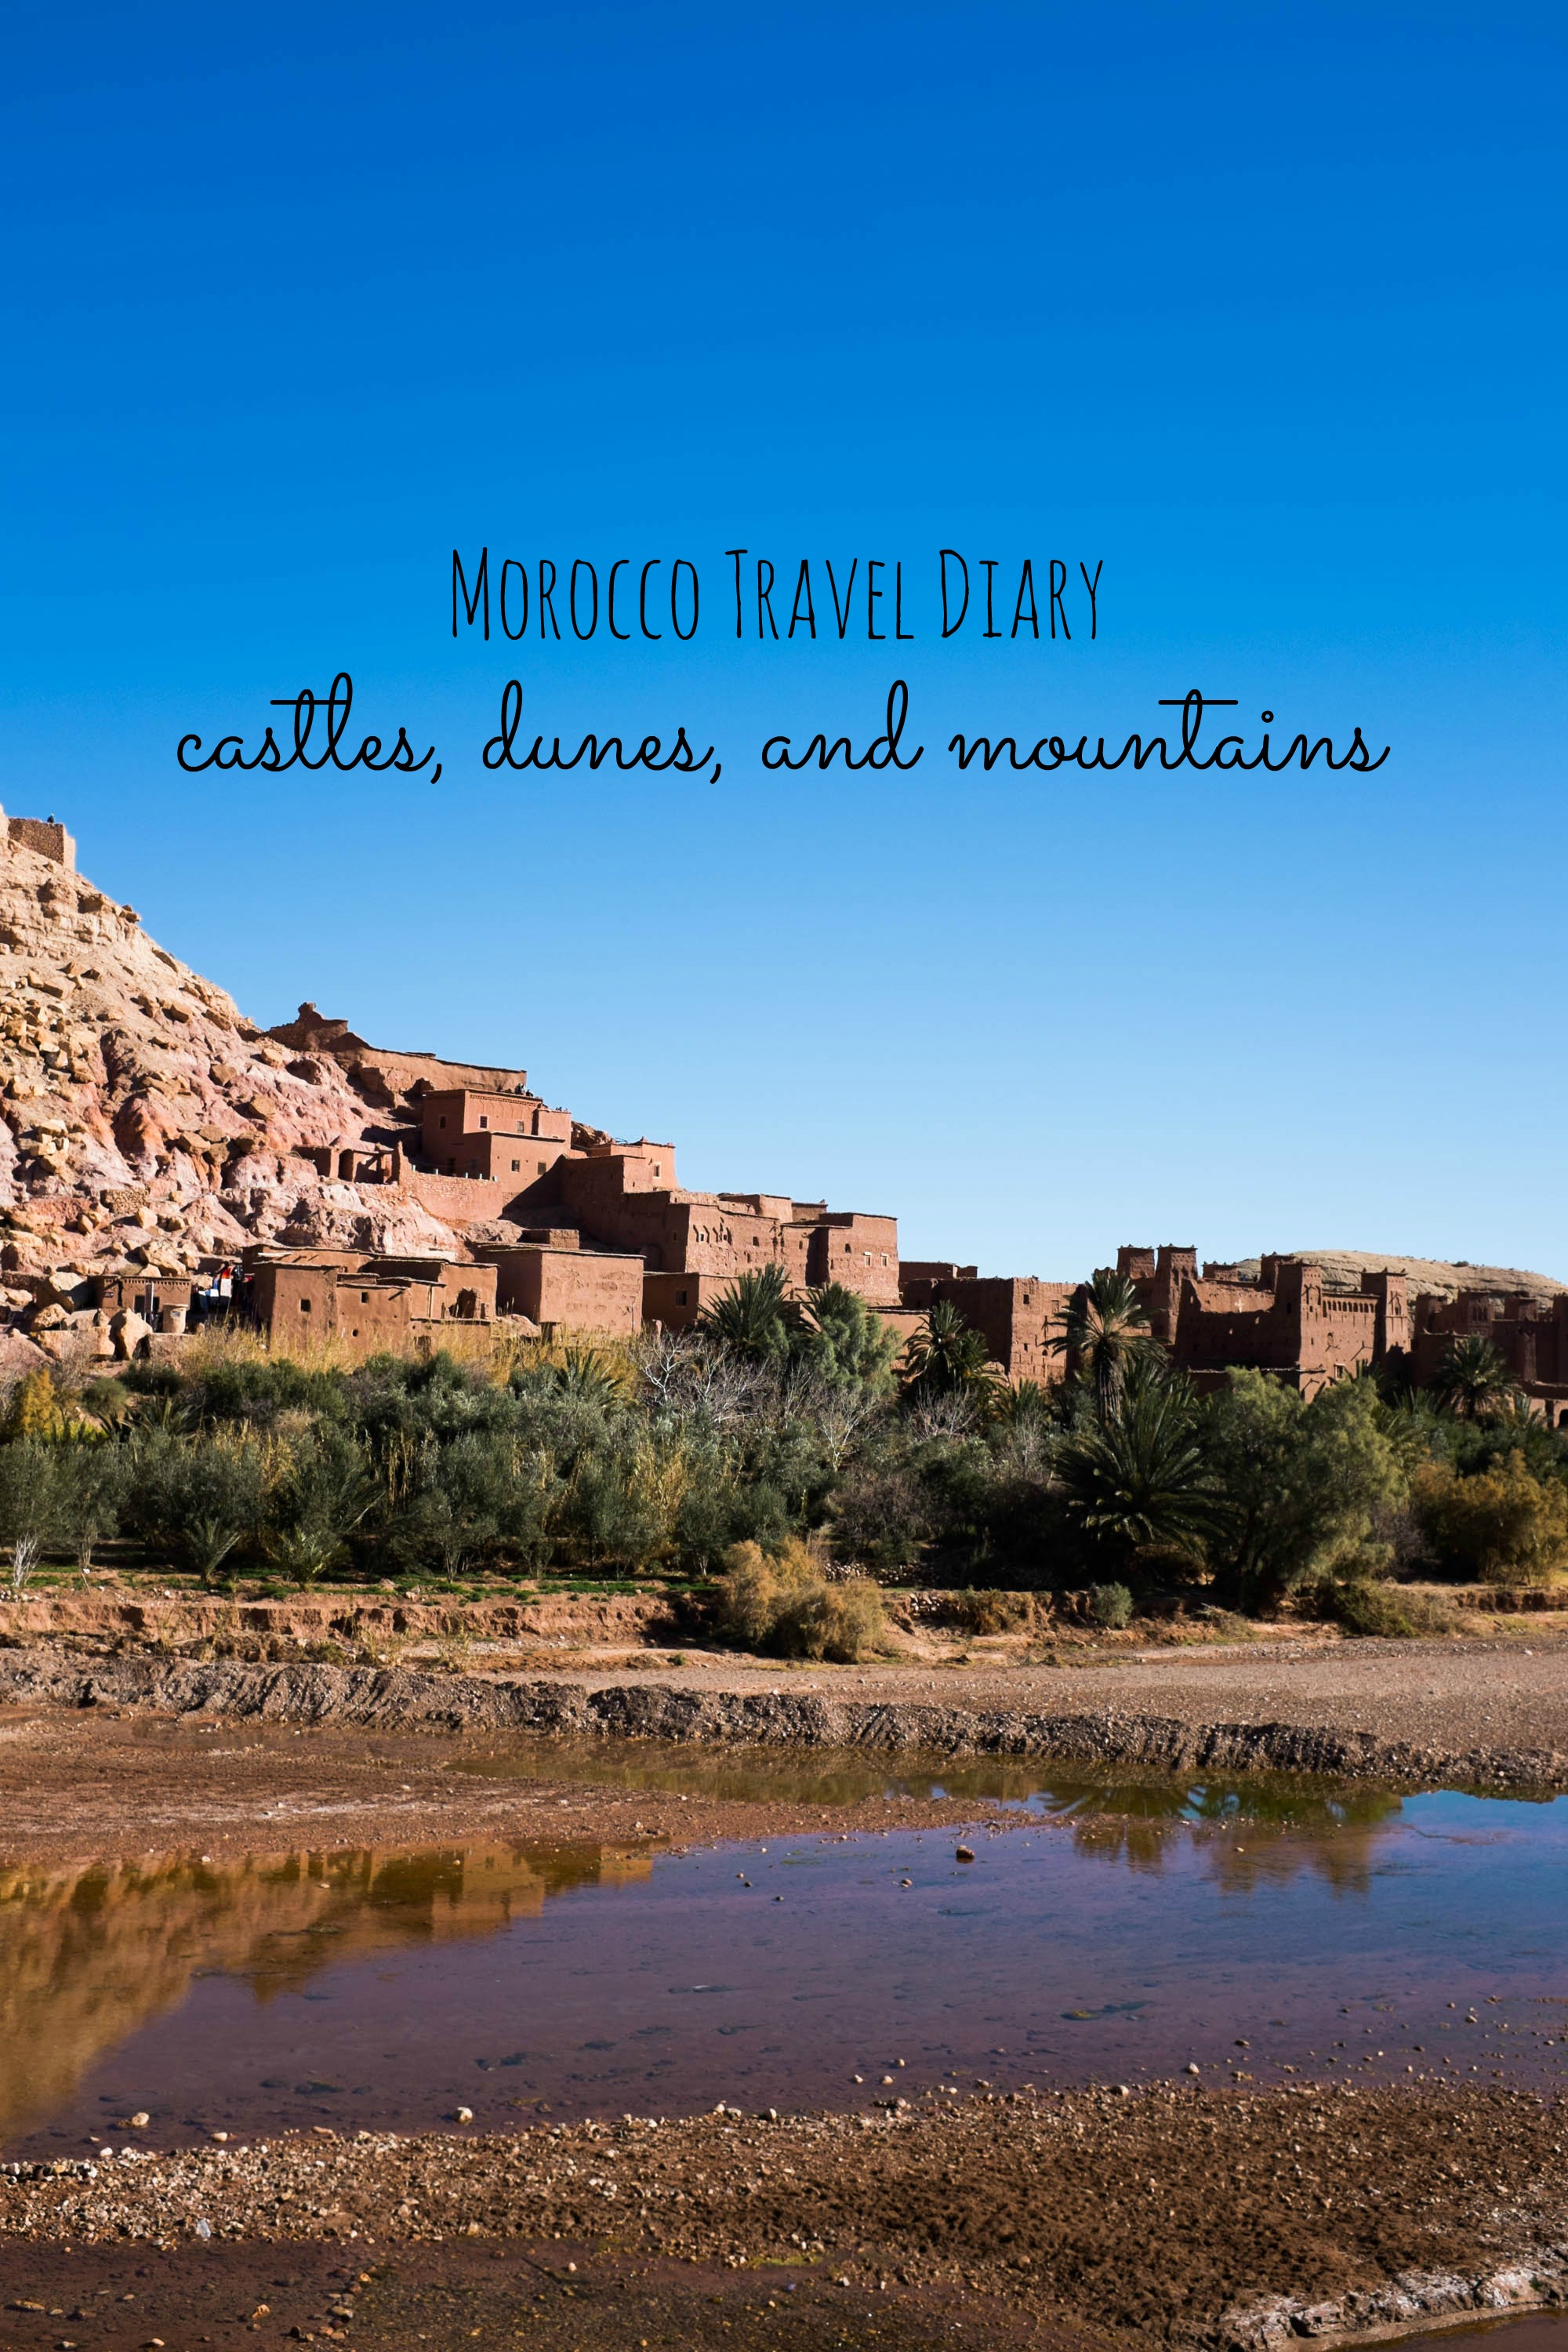 Journey into Morocco- the Sahara desert and surrounding scenes